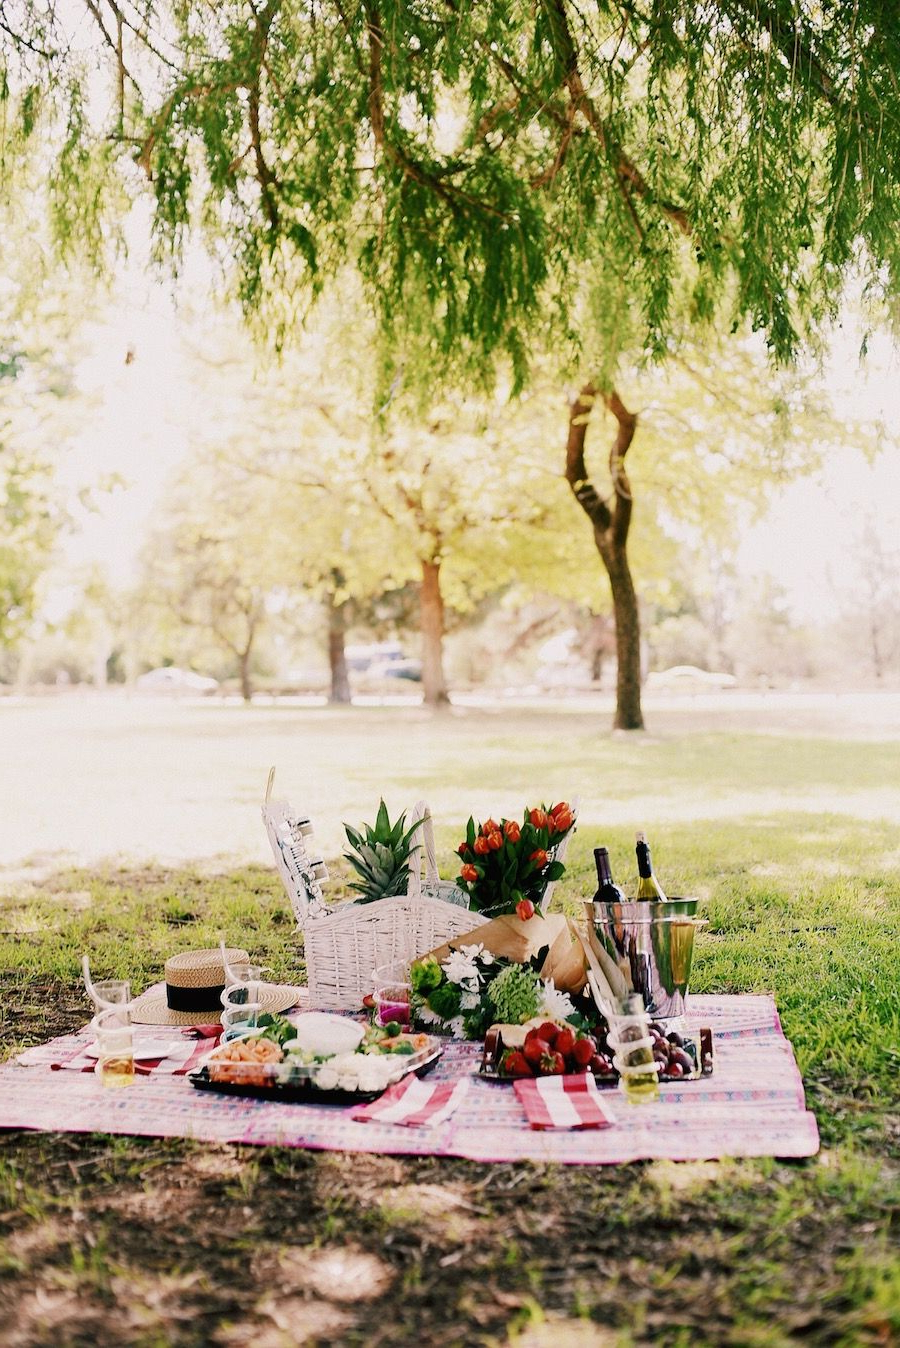 Pratiksha Sonoma 5 Piece Dining Sets In Favorite Picnic Style, Beautiful Picnic Set Up, Mom & Son Style, Alexa Chung (View 3 of 21)